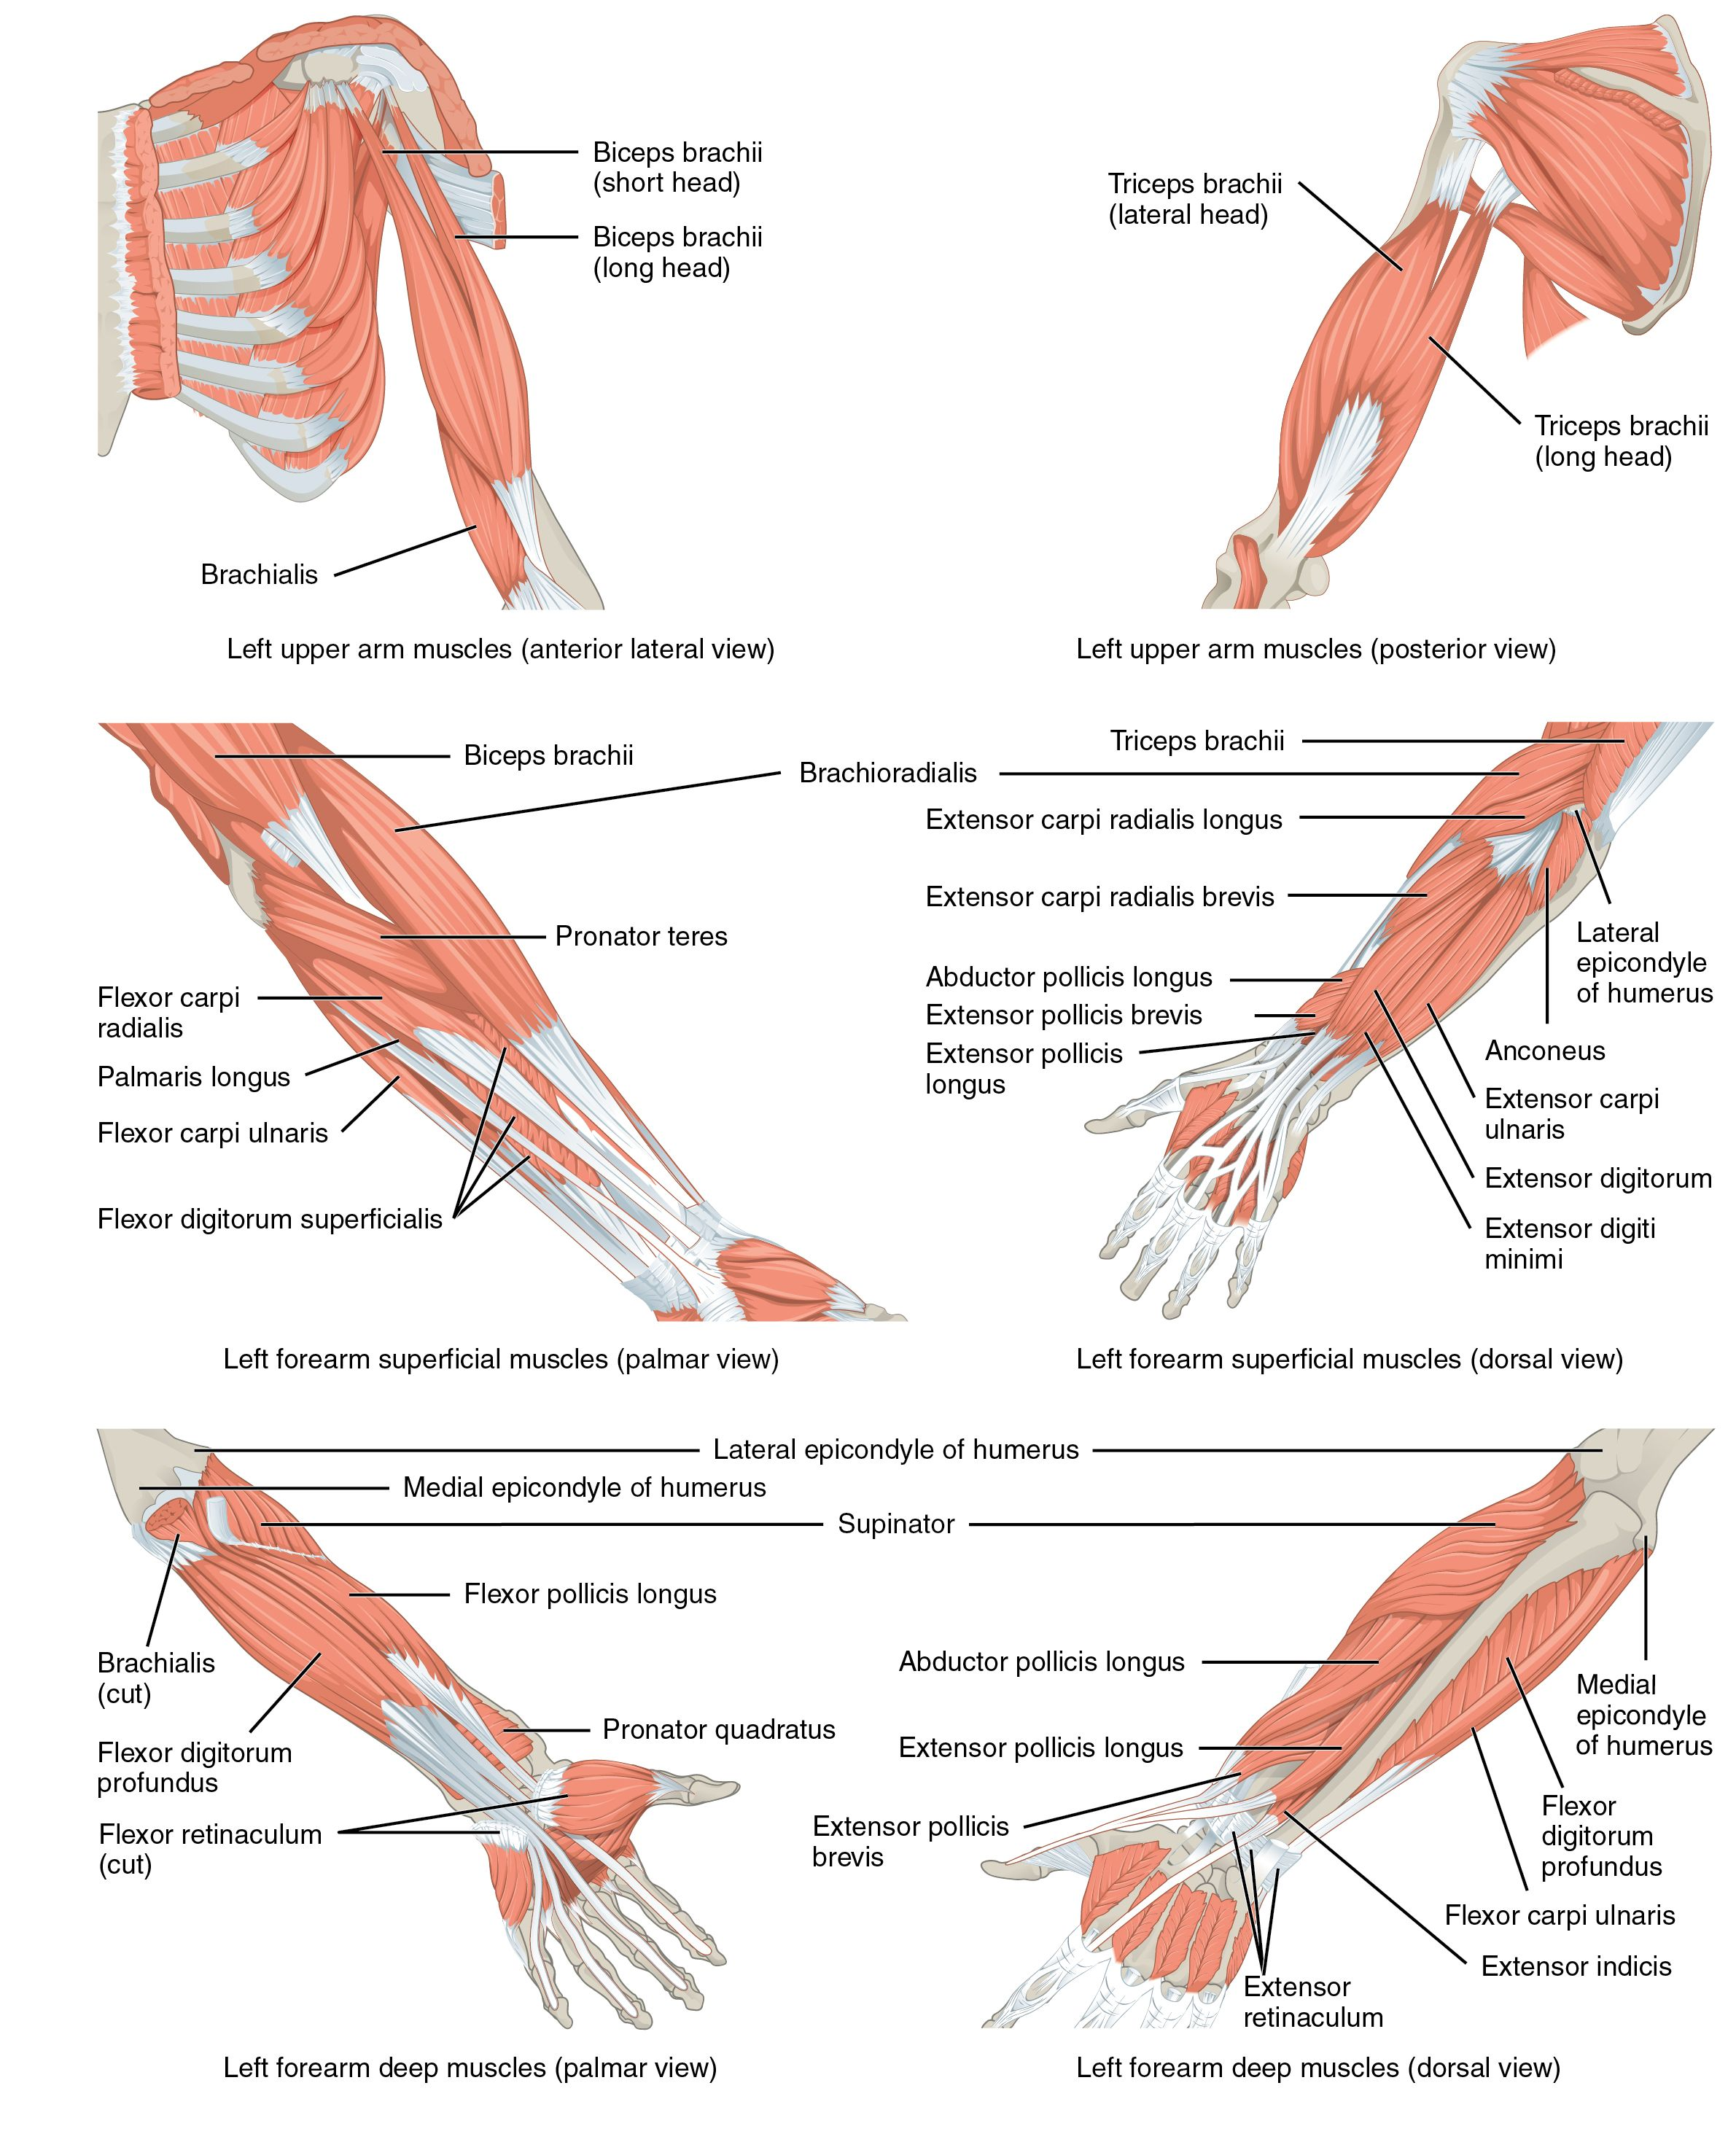 Anatomy of upper arm